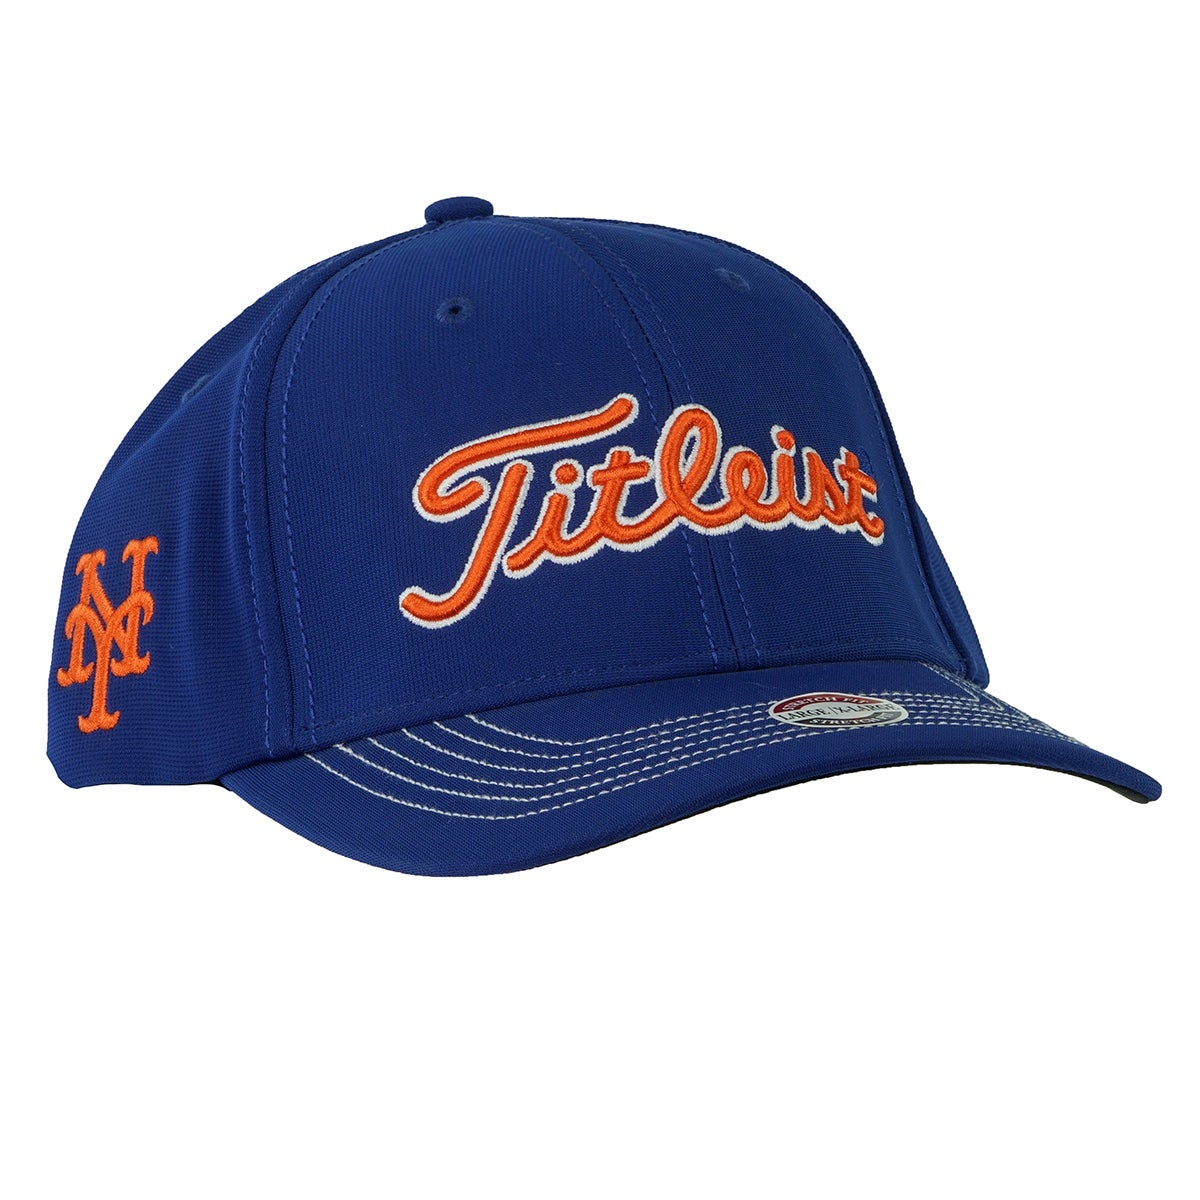 Shop Titleist Men s Professional Performance Hat Mets - Royal Orange - Free  Shipping On Orders Over  45 - Overstock.com - 25669334 161f9f2560e